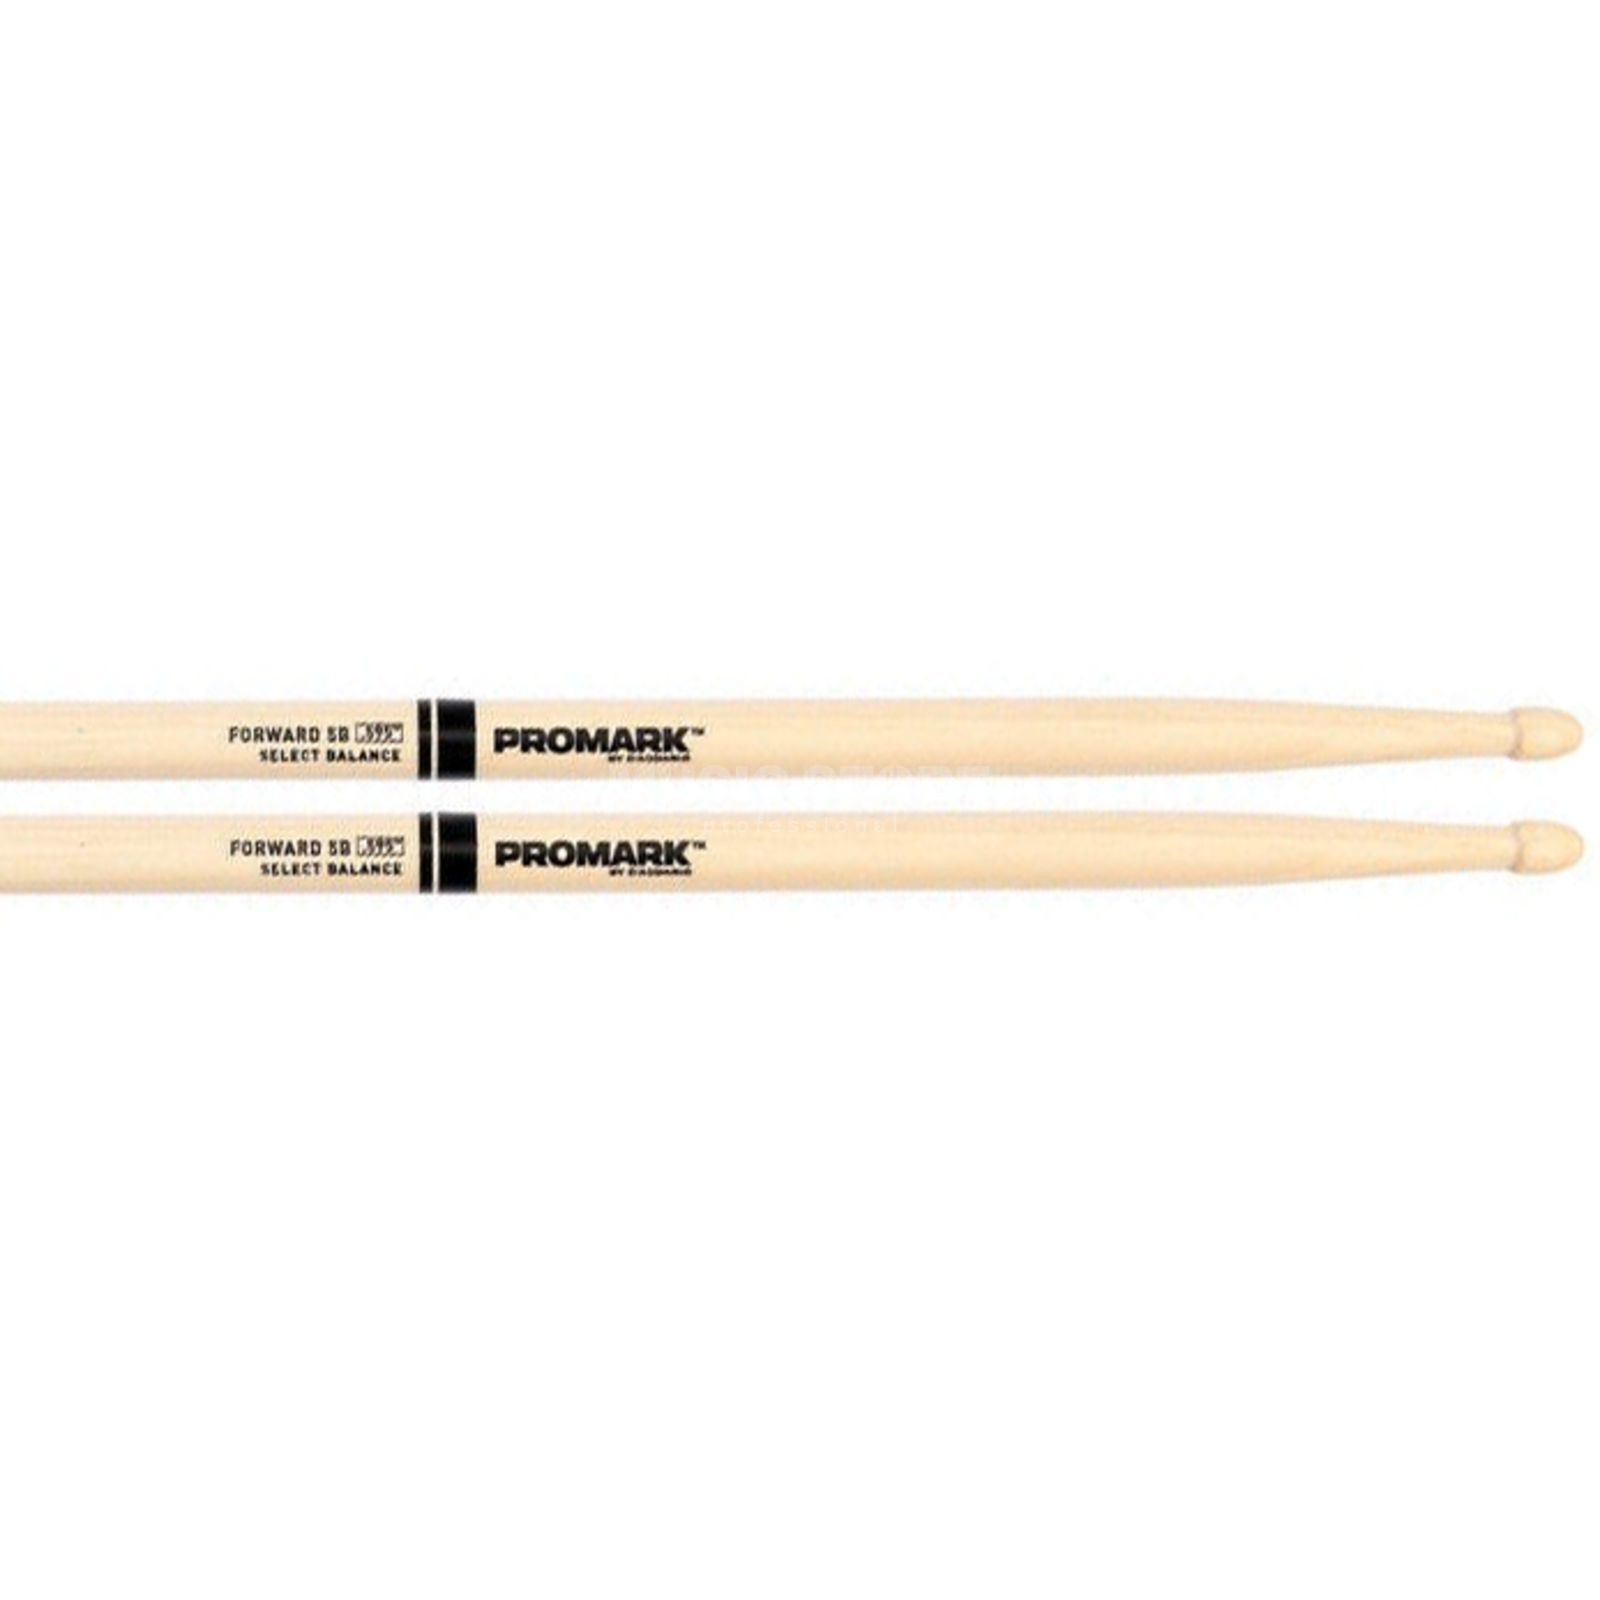 PRO-MARK Select Balance Sticks FBH595AW Forward Balance, Acorn Tip Image du produit